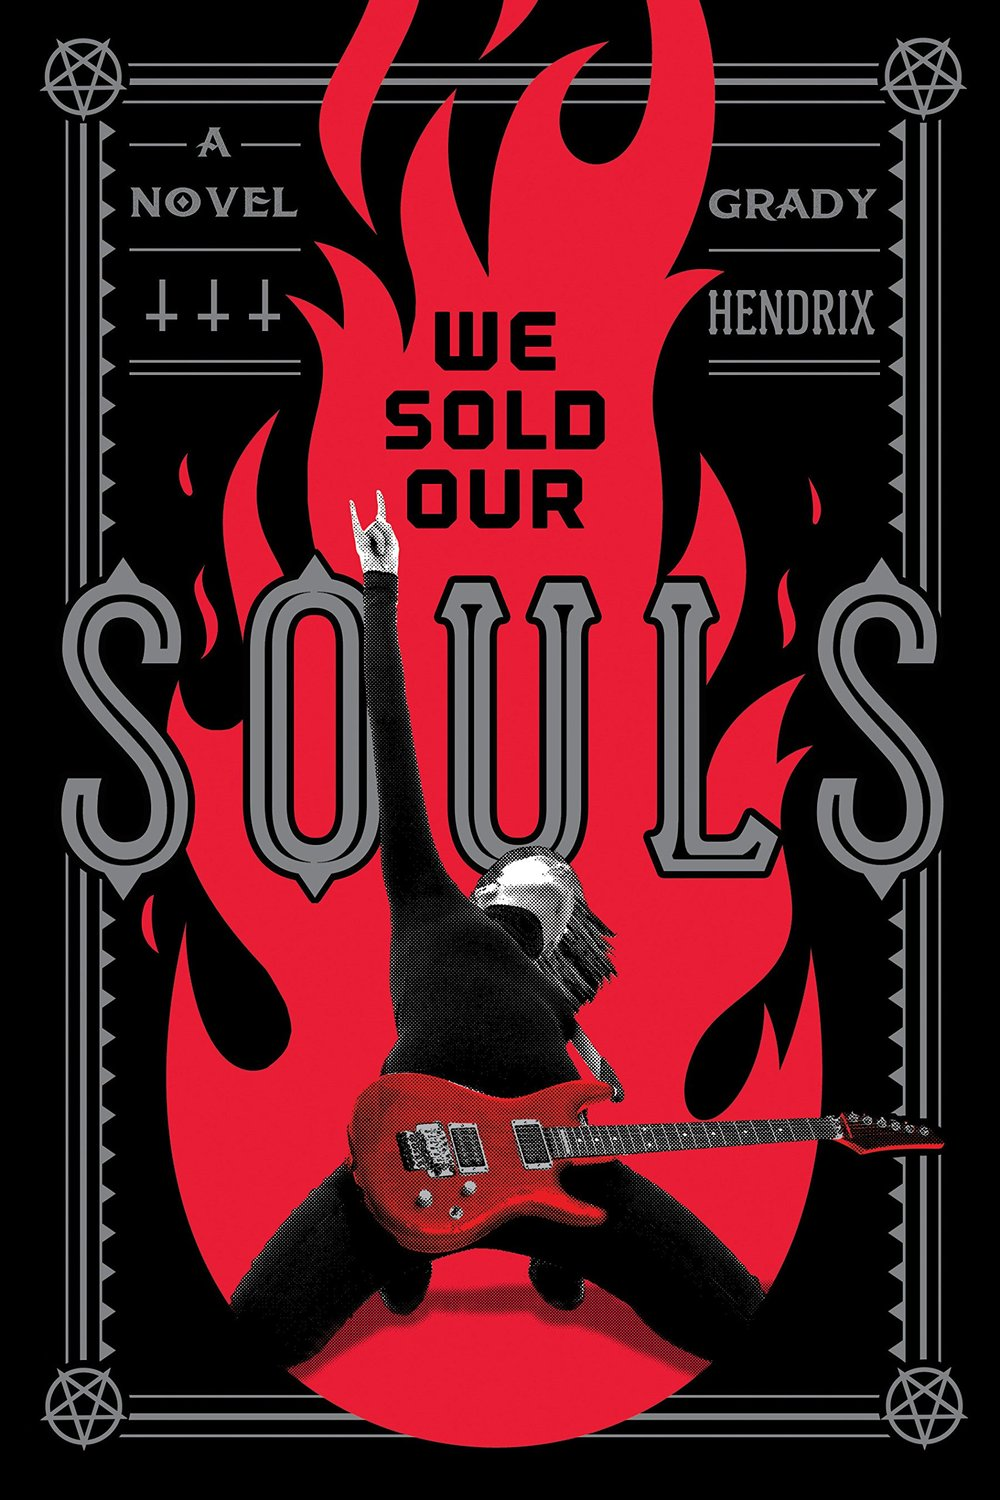 Othersode #18: Hold On To Your Souls / Grady Hendrix & Jennifer's Body - Souls are being sold all over the place in this #othersode as the squad discusses 'Jennifer's Body' (2009) and Emily interviews Grady Hendrix, author of the forthcoming book 'We Sold Our Souls.' In the 2009 horror-comedy 'Jennifer's Body,' the squad (with special guest Mary Kay!) talk about feminism, horror movie tropes, whether Megan Fox can act, and the dangers of demonic possession. Next Emily and Grady talk about his newest book, as well as his other work (which all feature female characters!). Grady talks about his hands-on research processes, why the horror genre makes him happy, why vampires are kind of lame (but yes, he is currently writing a vampire novel), and, of course, Stephen King. Plus, get a rundown of what's currently on the #BookSquadBlog and what's up next on the podcast. For our next #fullpisode, get out your magnifying glass and trench coat because it's mystery time! Read along with us for Tana French's 'The Trespasser.' See ya on the social meedz - @booksquadgoals. Until next time, keep an eye on your soul!